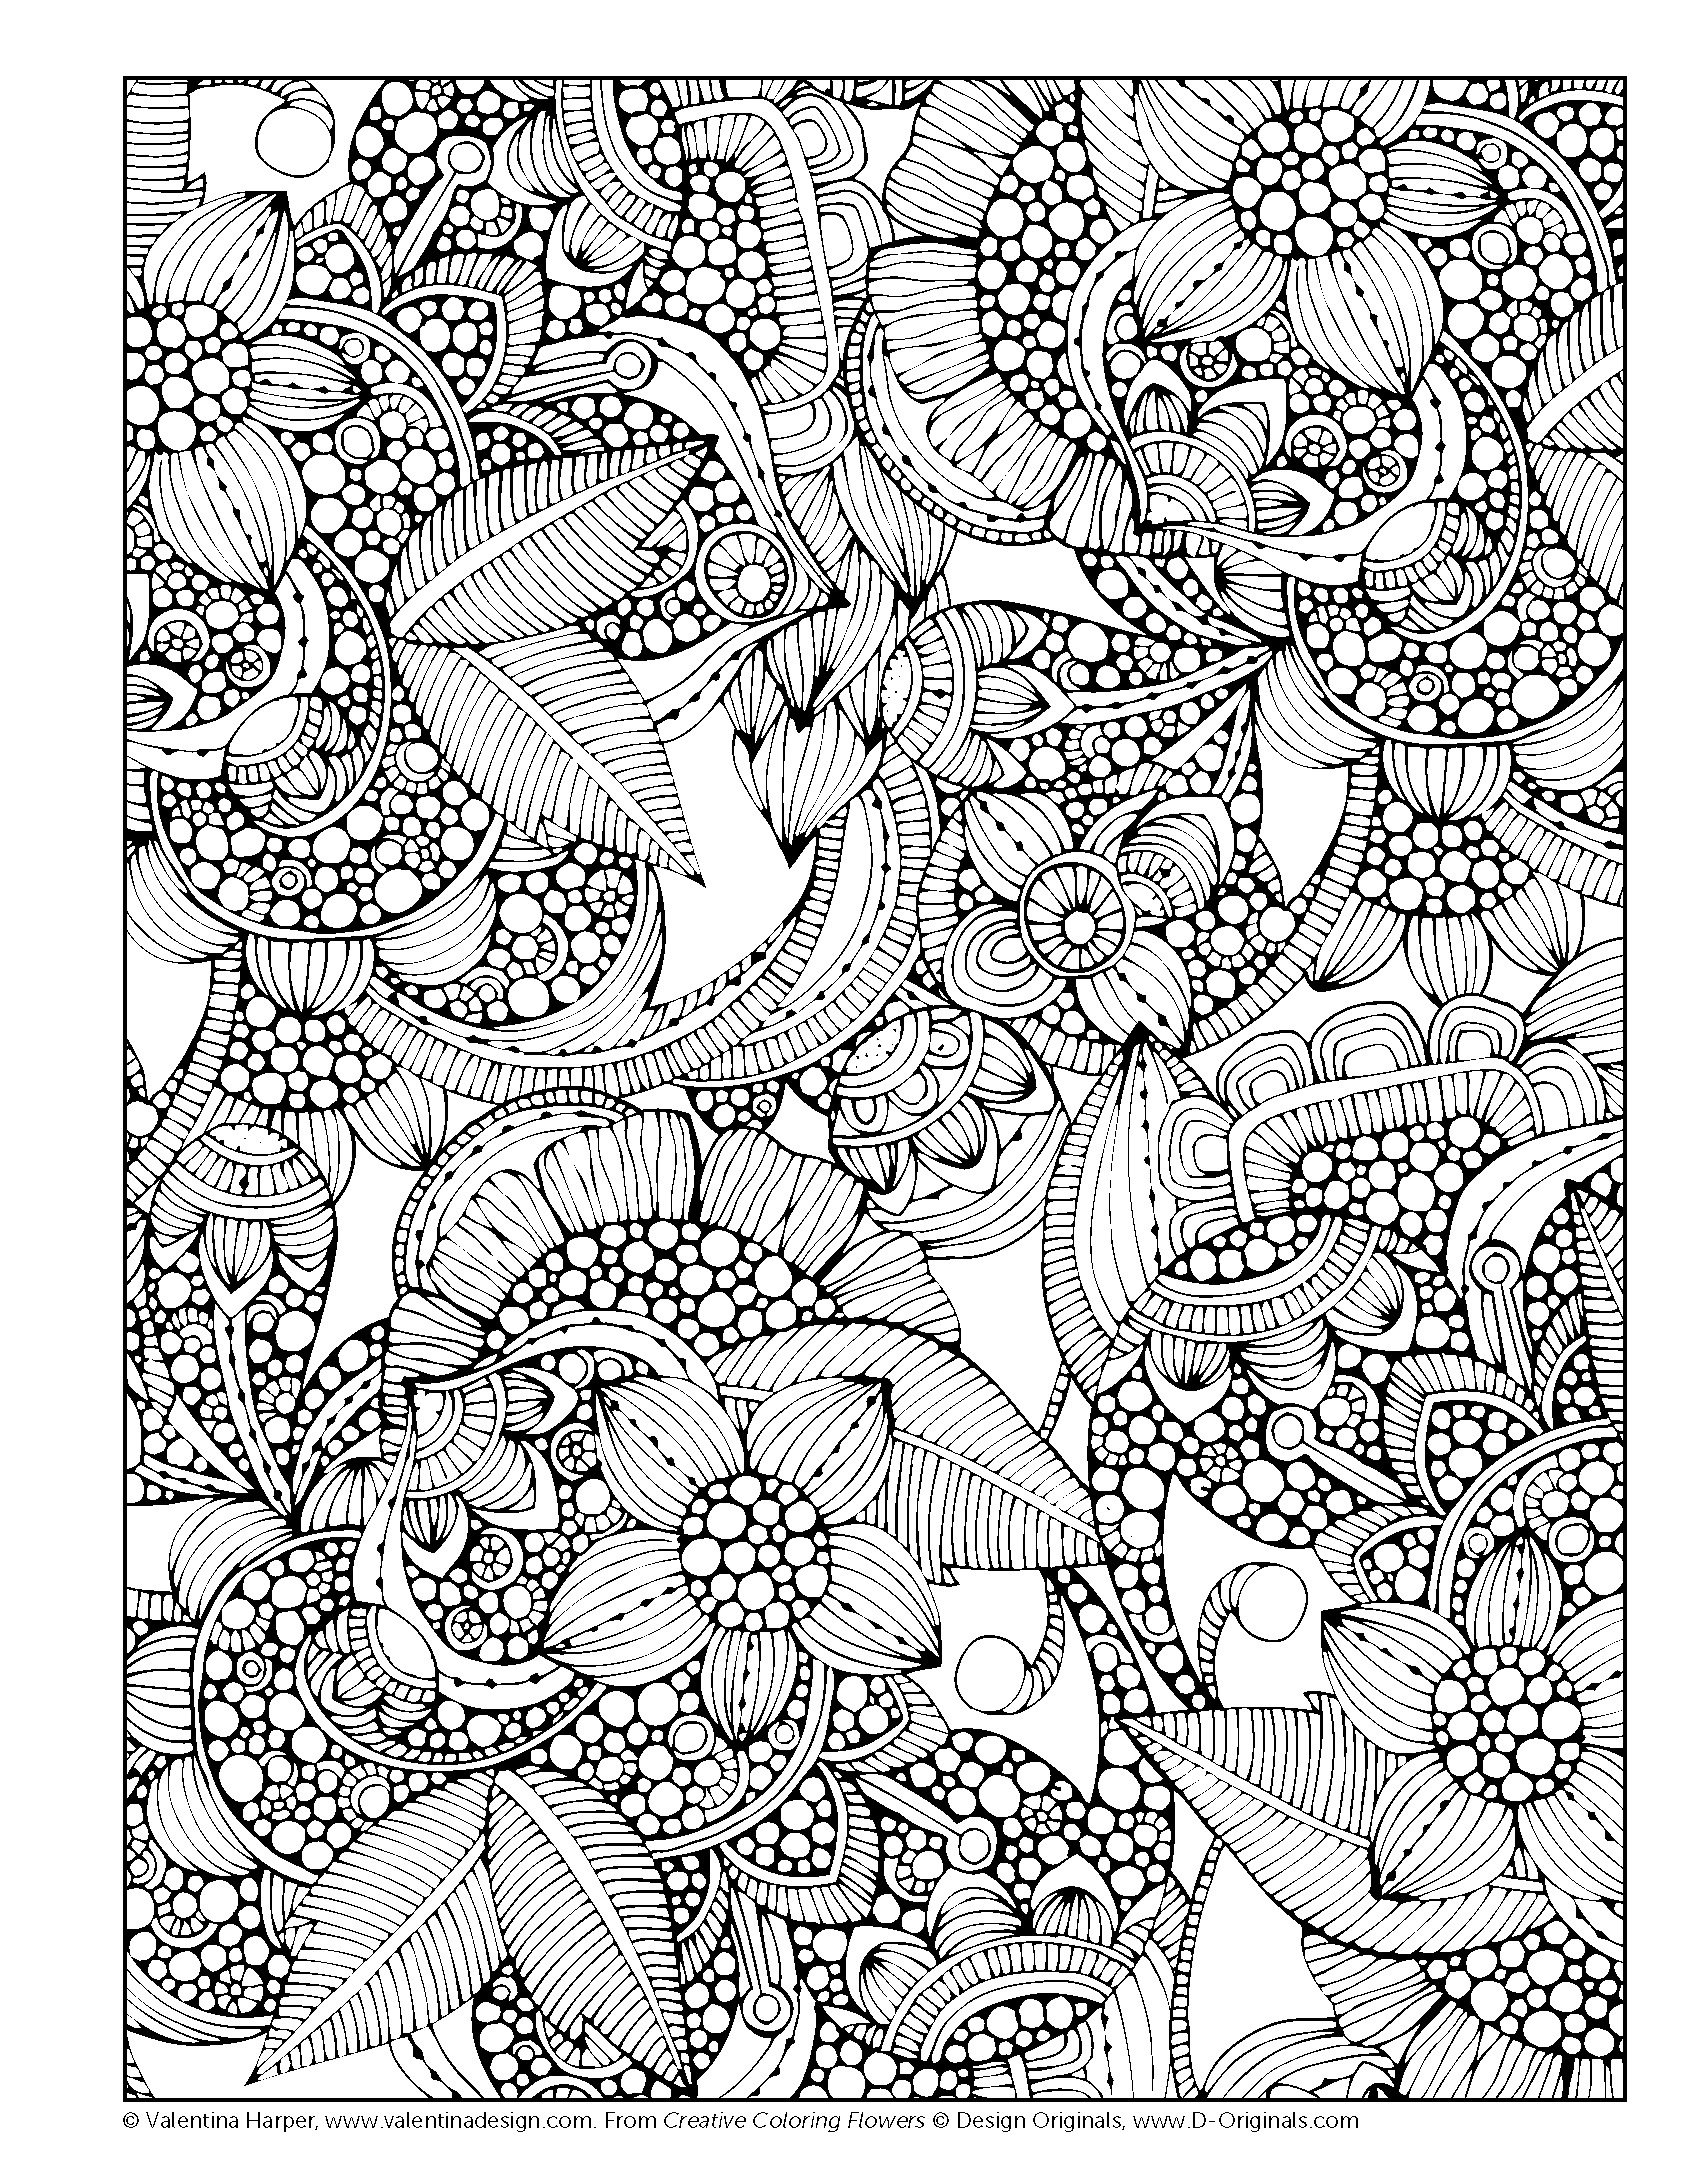 Creative Coloring Flowers Art Activity Pages To Relax And Enjoy Valentina Harper 0023863055055 Amazon Books